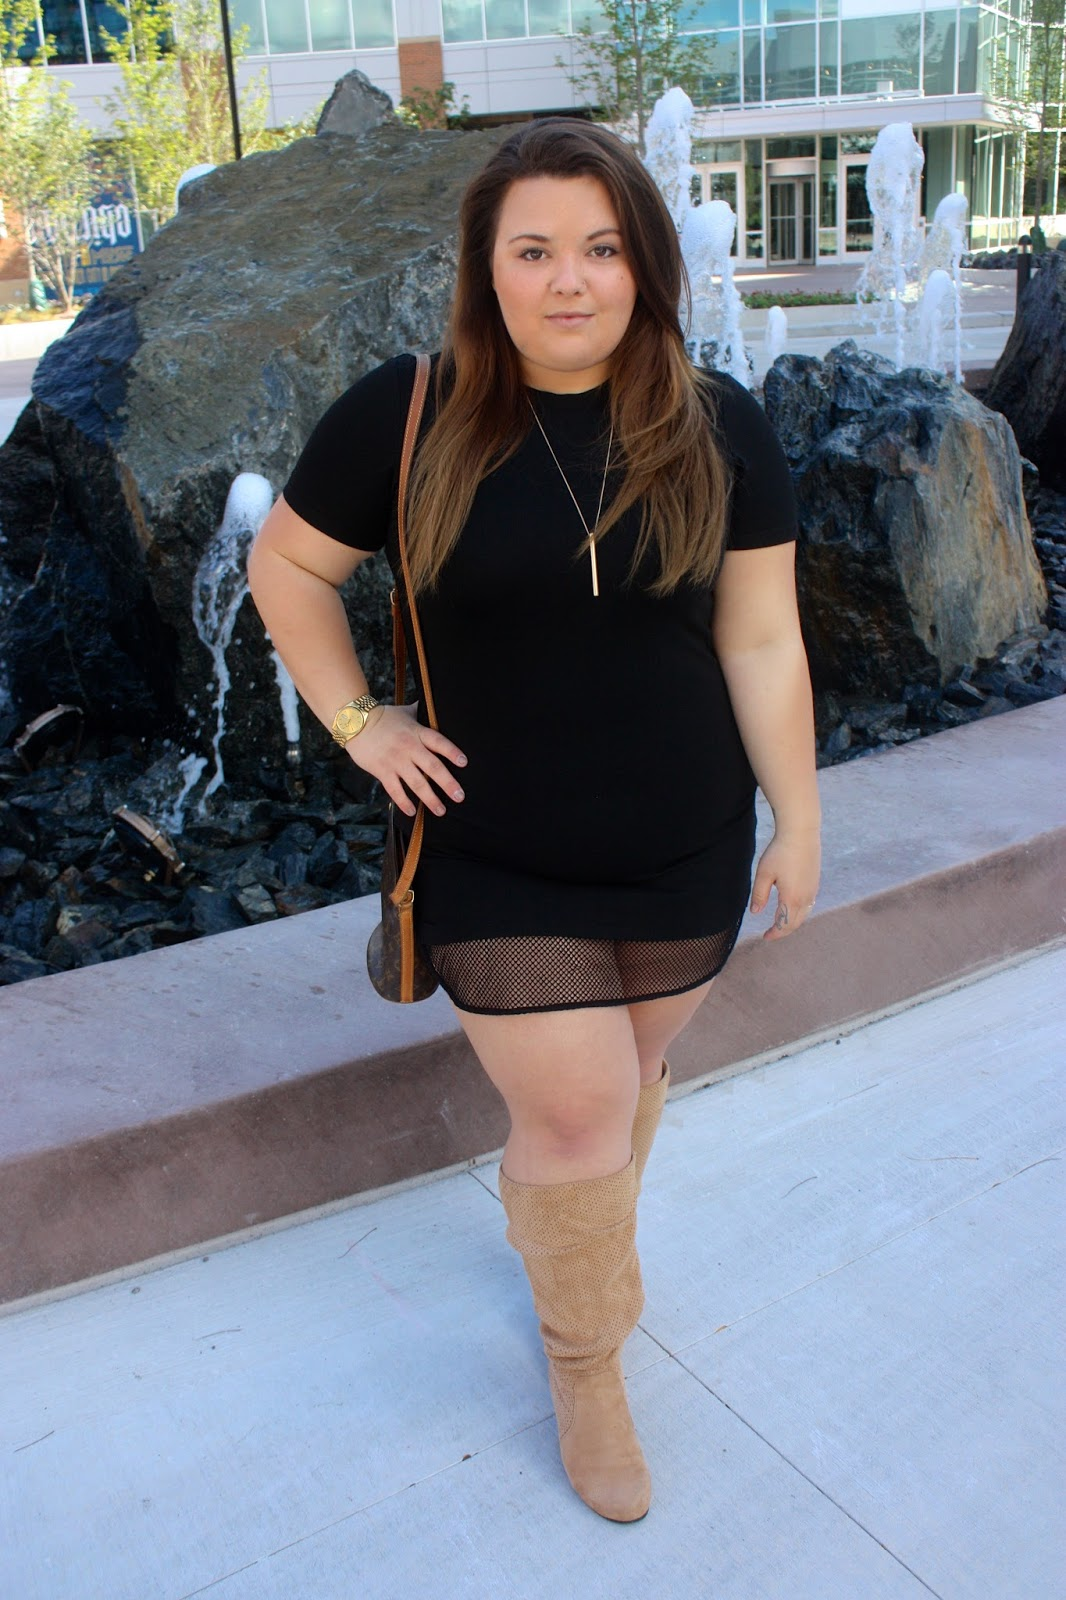 Little Black Dress Natalie In The City A Chicago Plus Size